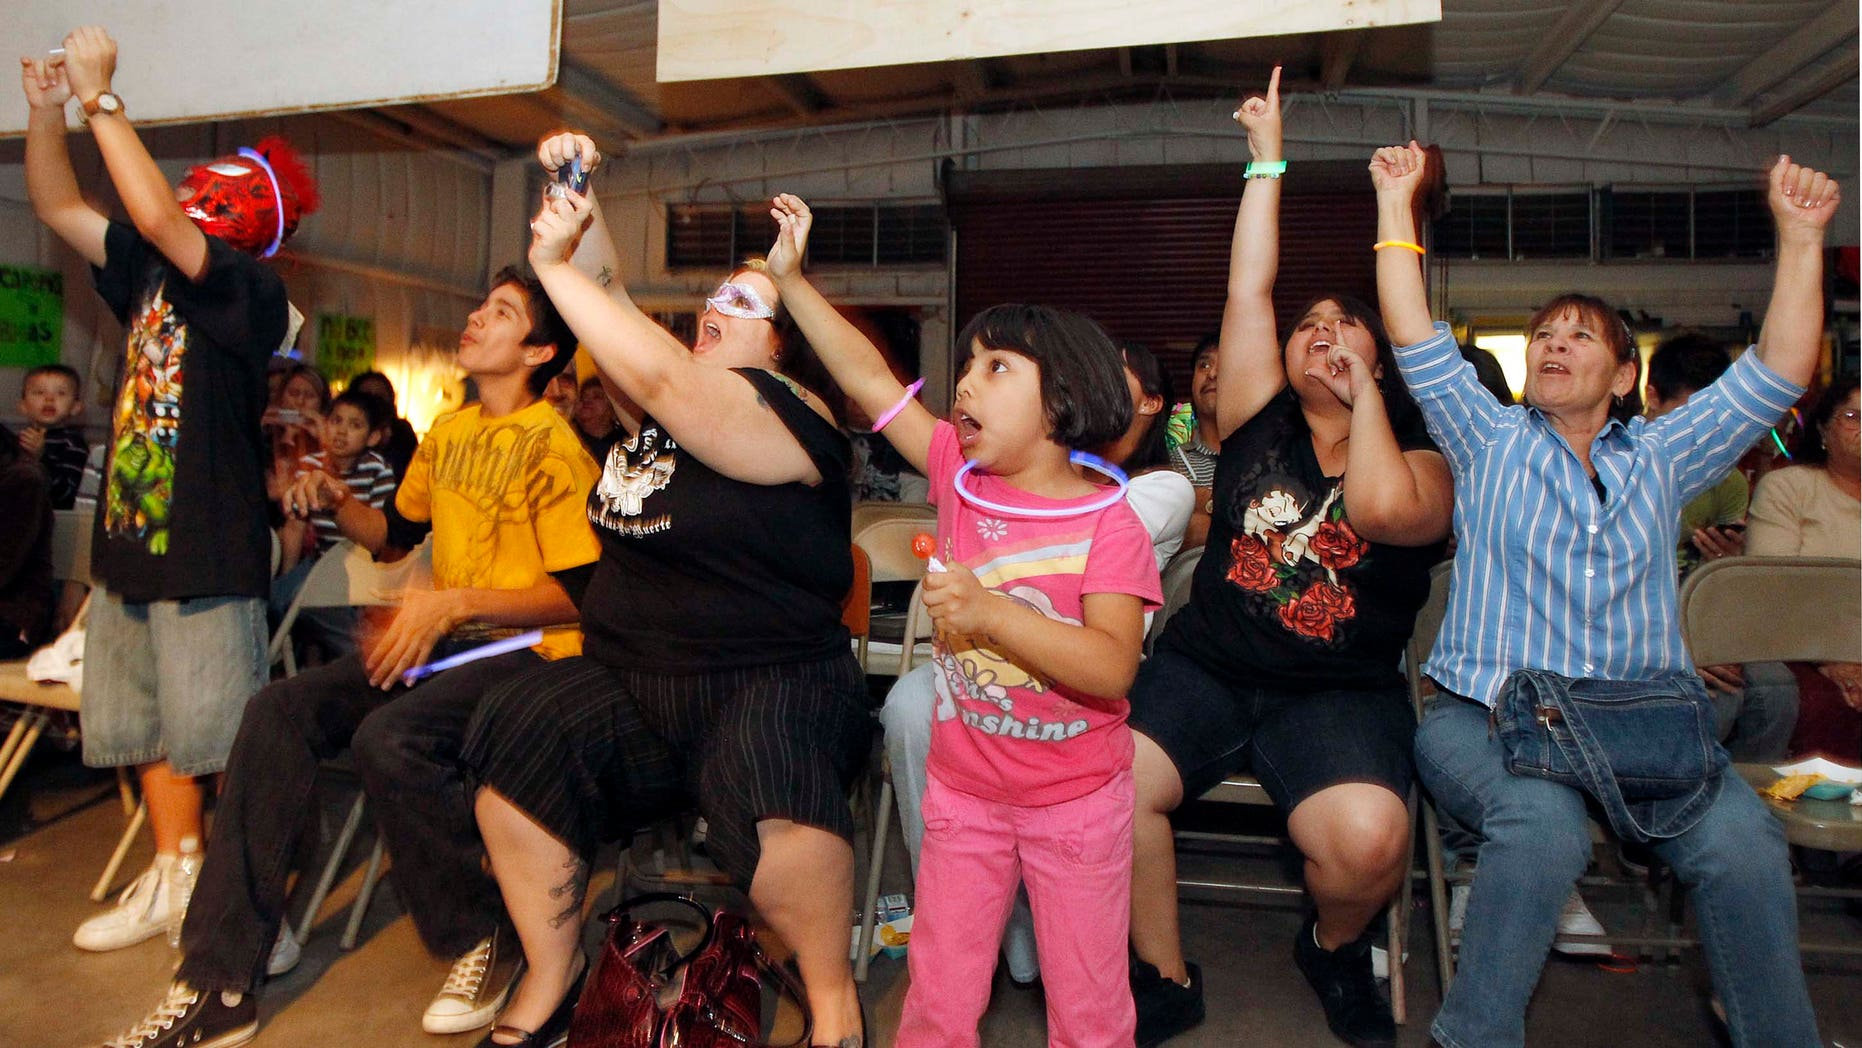 This Friday, April 30, 2010 photo shows fans as they cheer during a match at a Lucha Libre Mexican wrestling night, part of Lucha Libre Internacional Gladiadores Unidos, at a family friendly venue in Phoenix. (AP Photo/Ross D. Franklin)